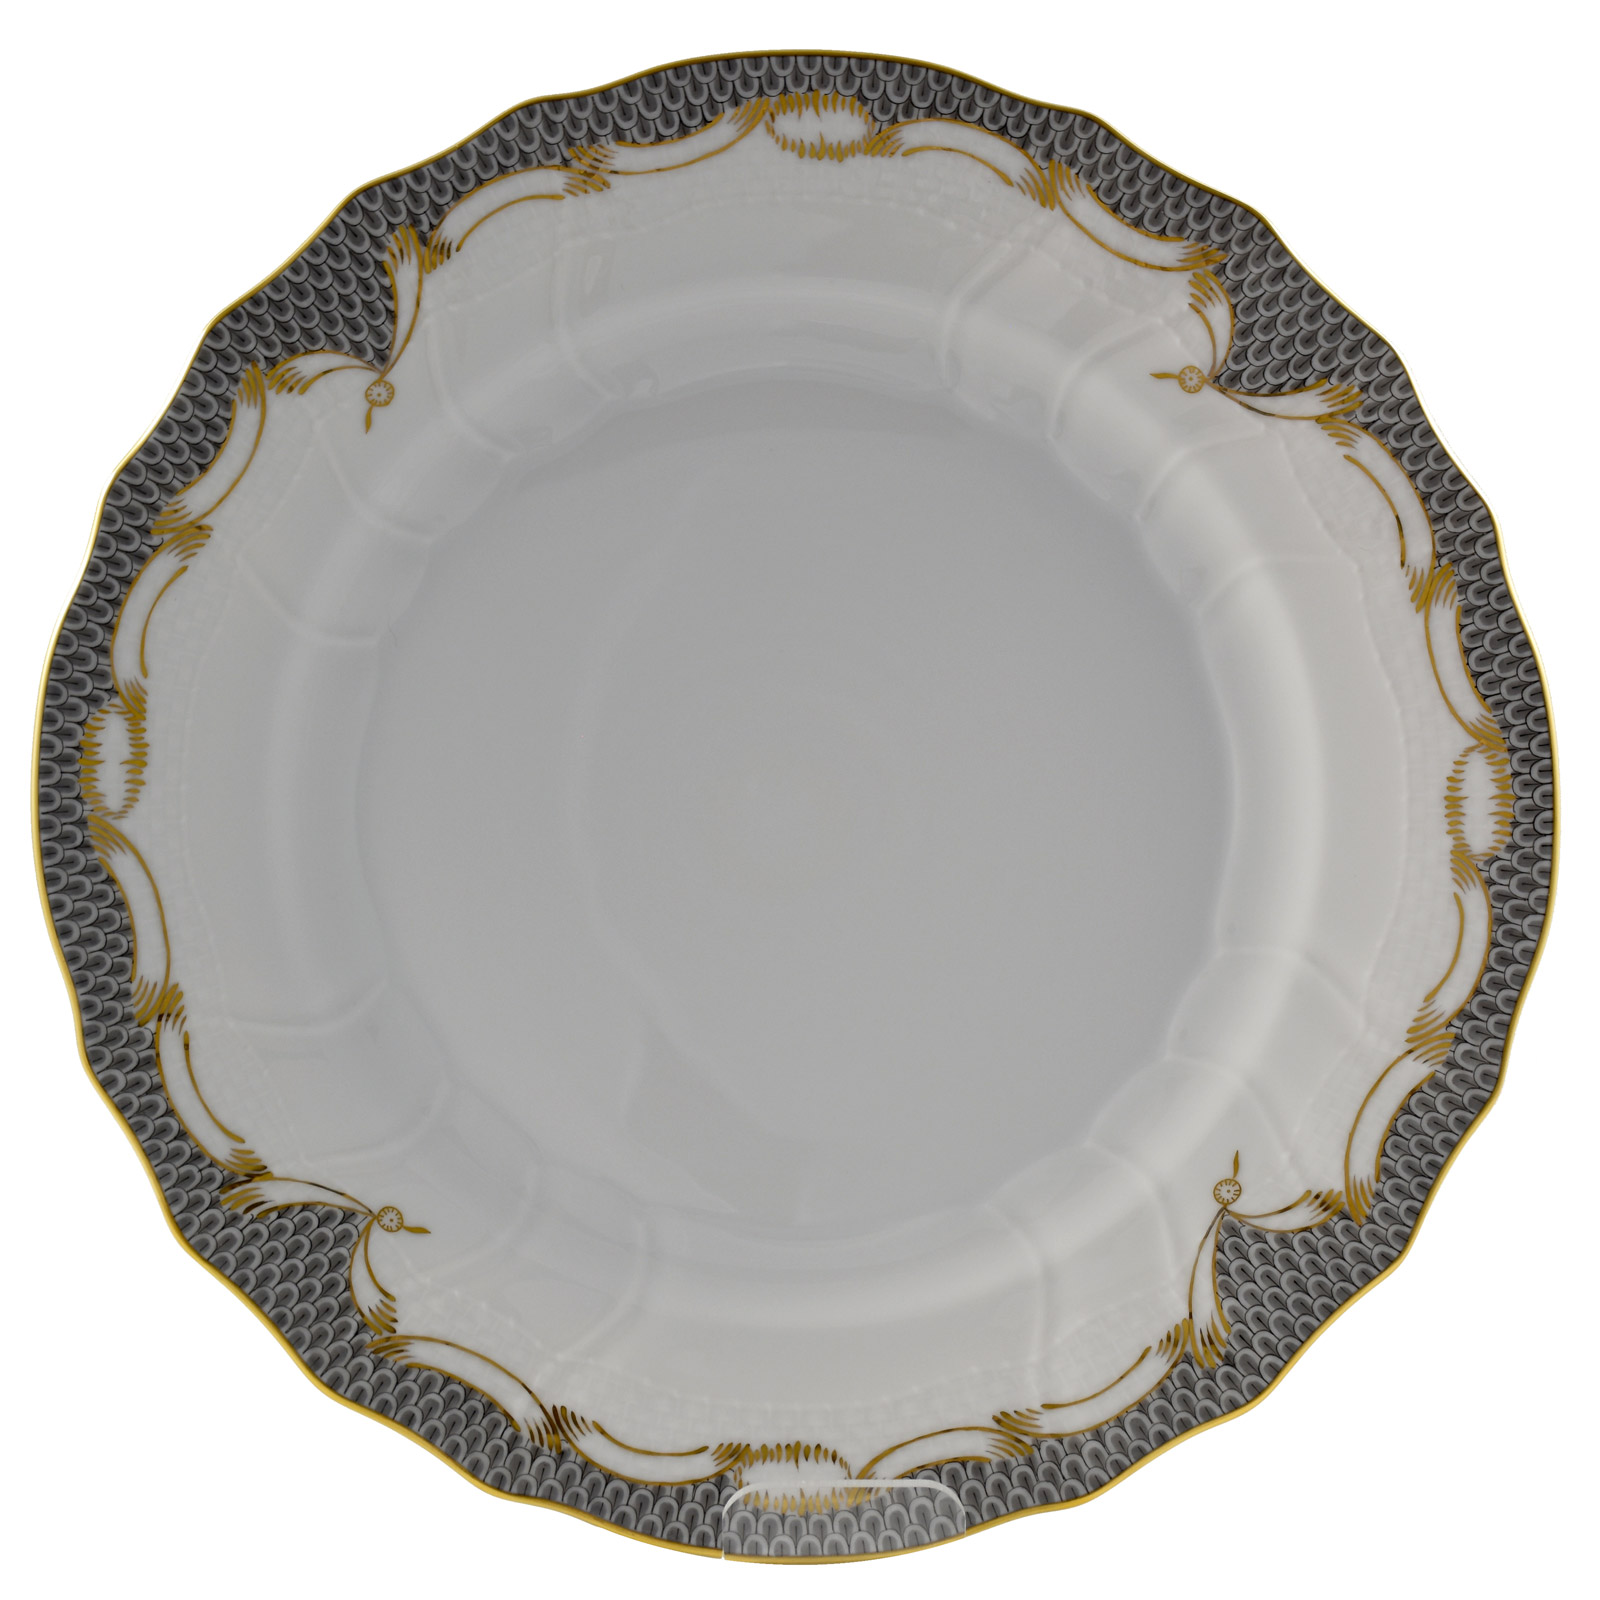 sc 1 st  House of Art & Herend Grey and Golden Scales Dinner Plate - ART OF TABLE - House of Art